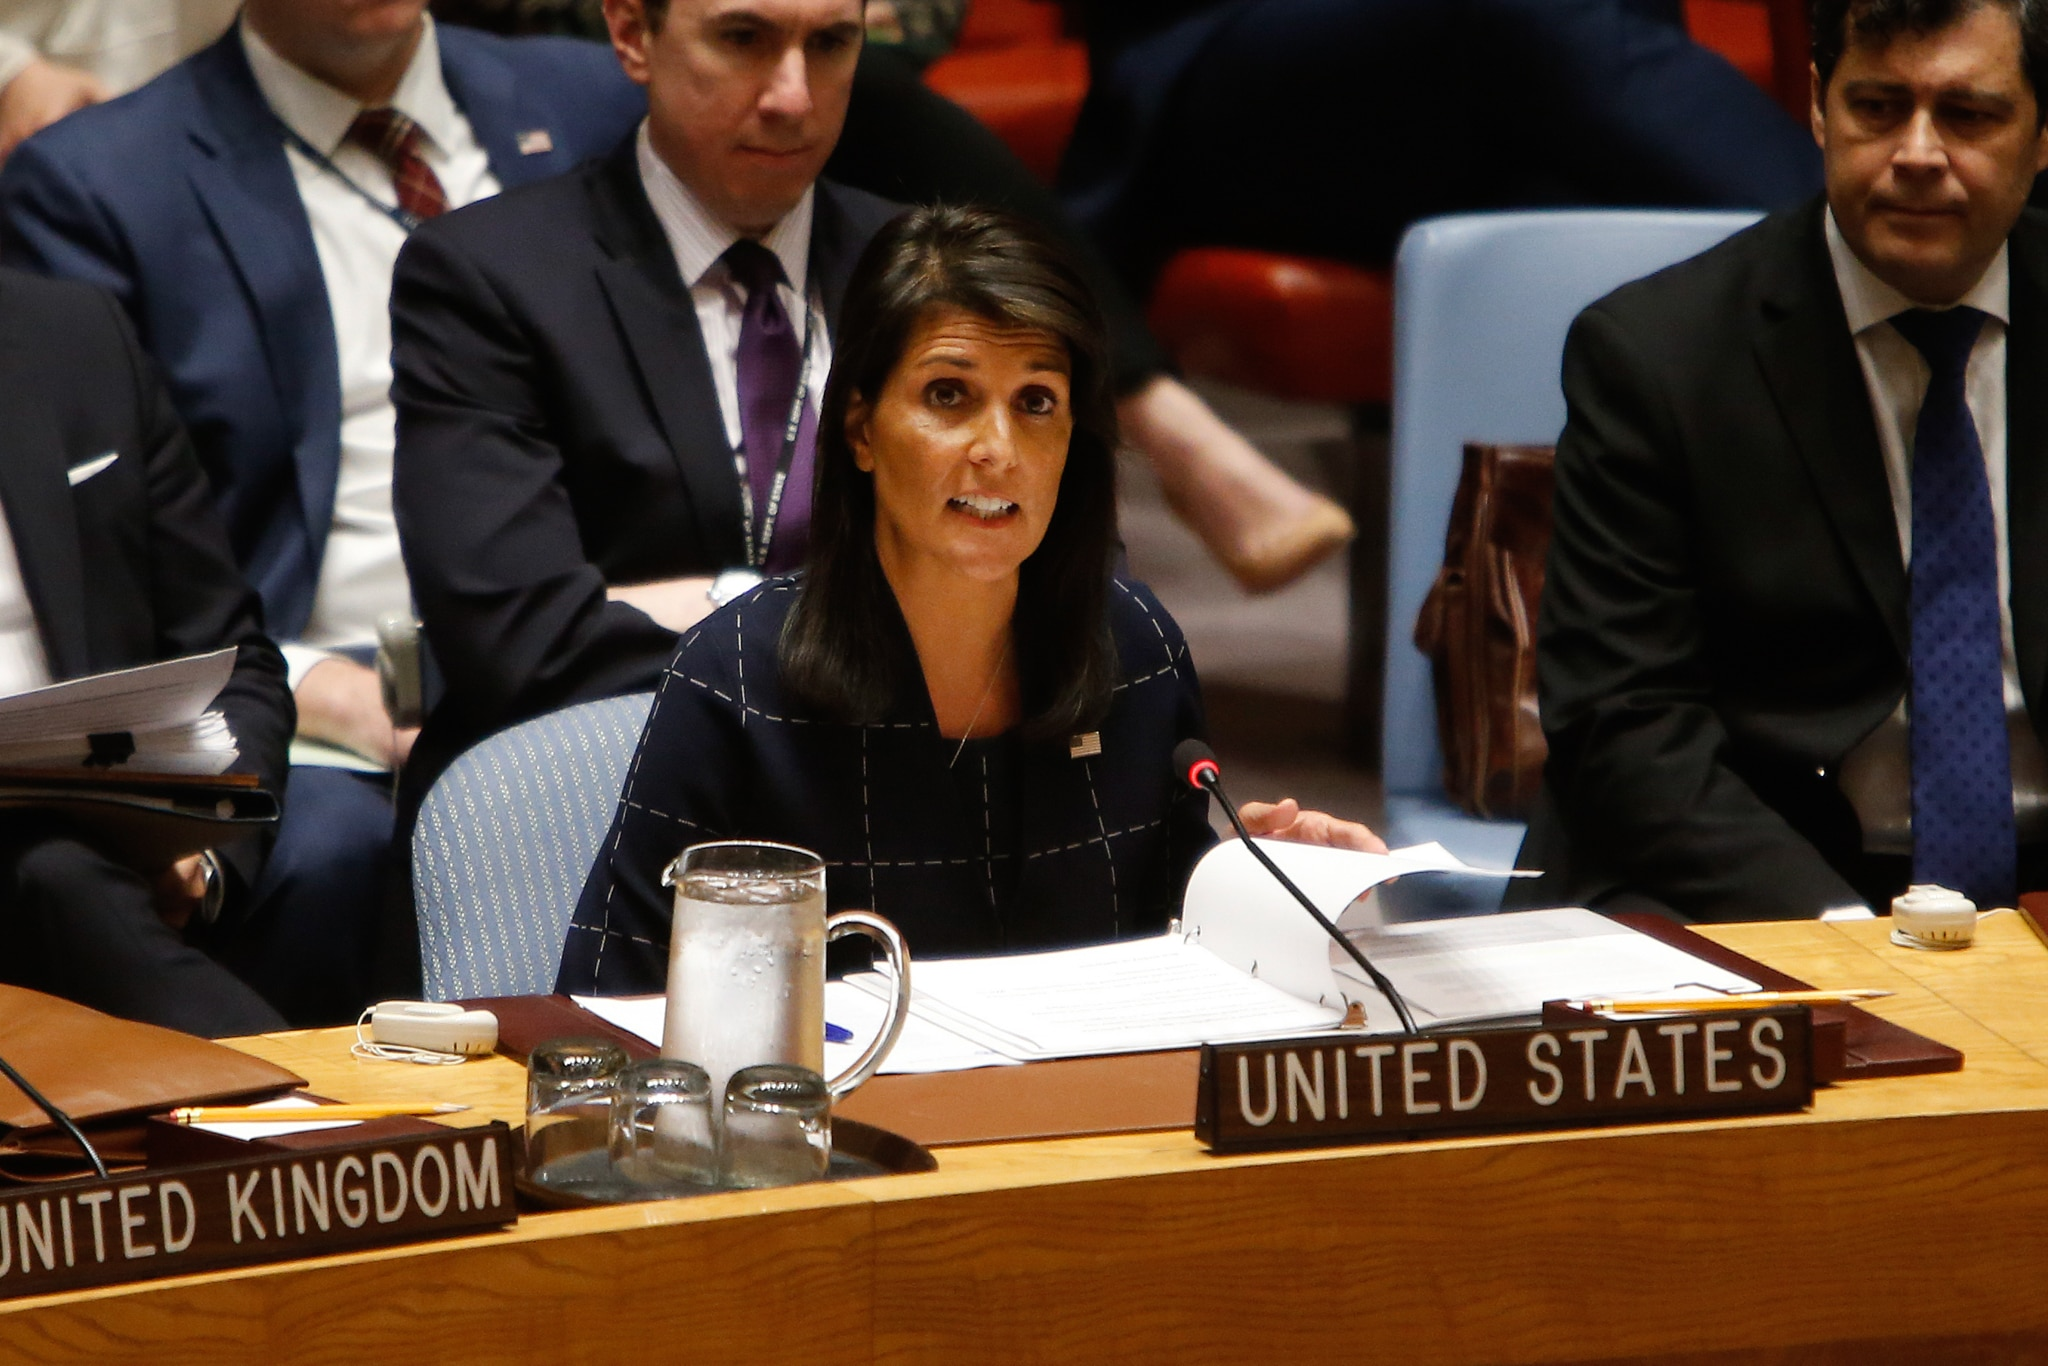 Nikki Haley seated at desk with microphone (© AP Images)